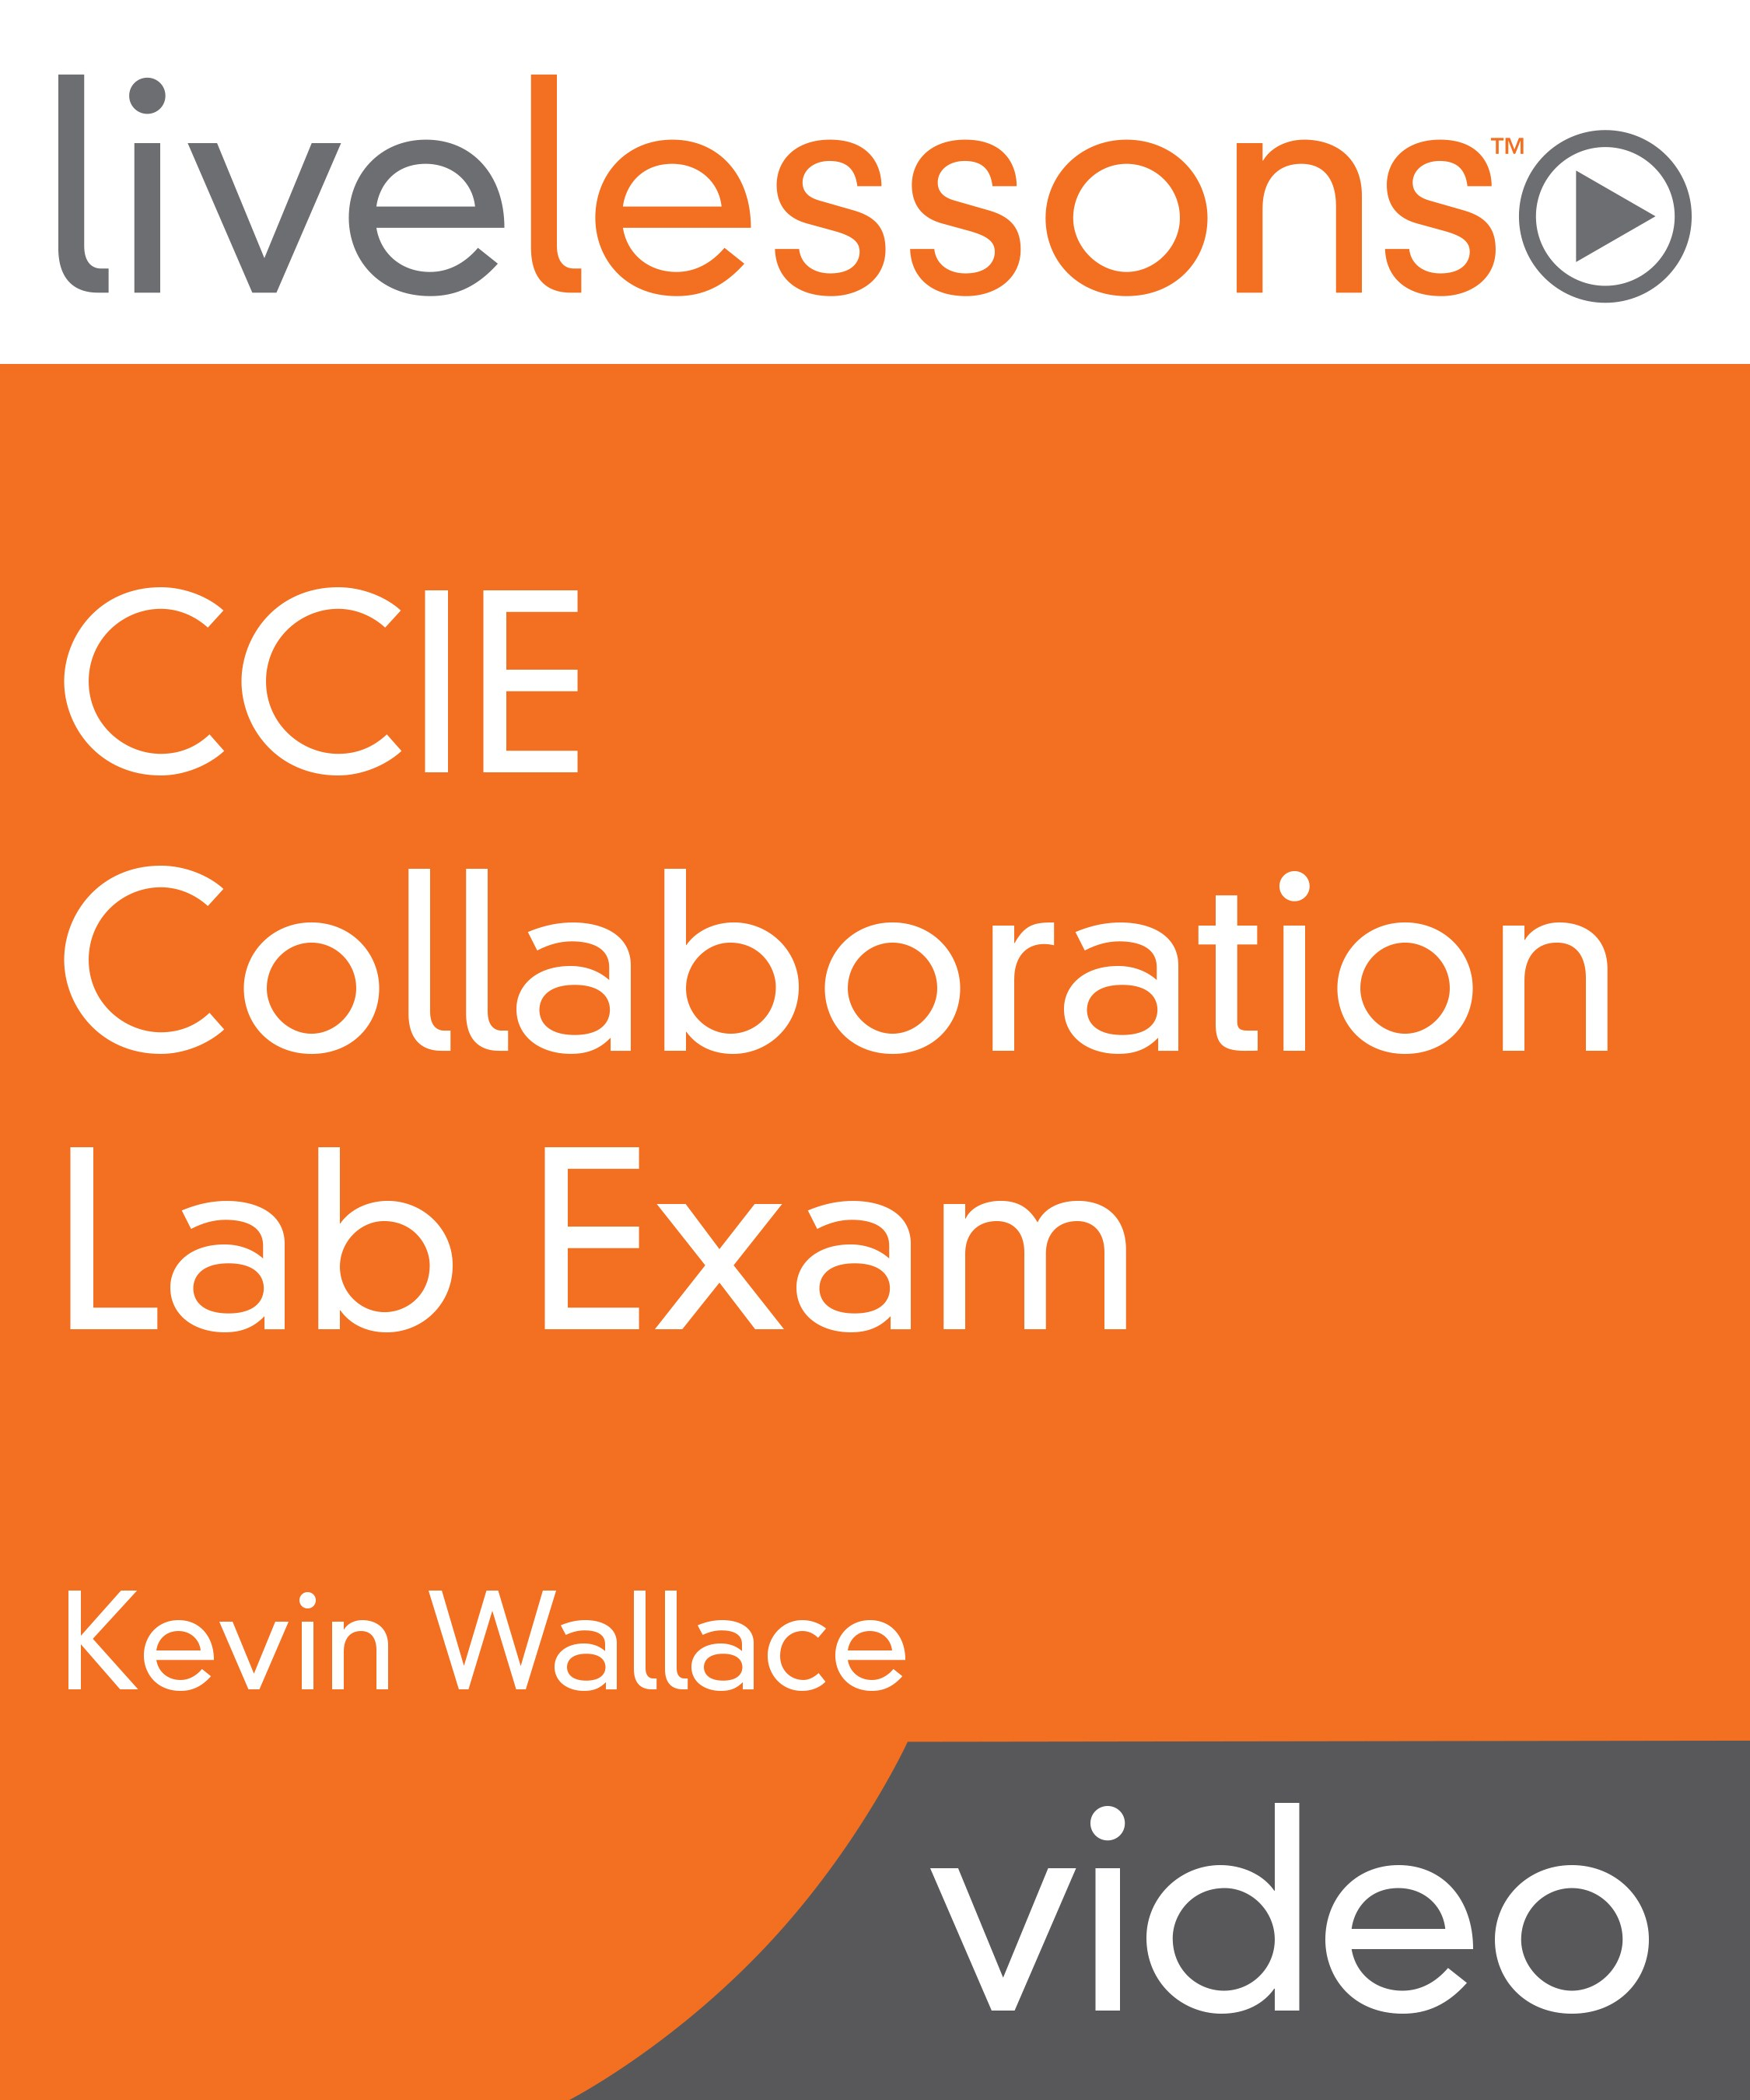 CCIE Collaboration Lab Exam LiveLessons